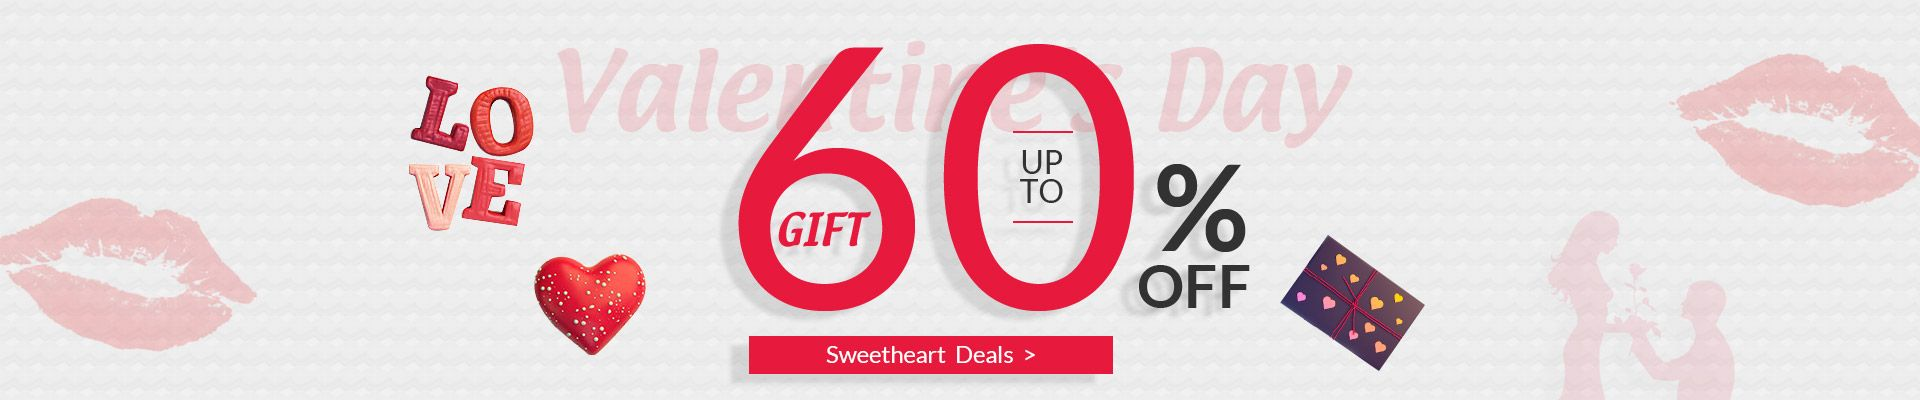 Valentines Day Gifts With Big Discount Hot Sale